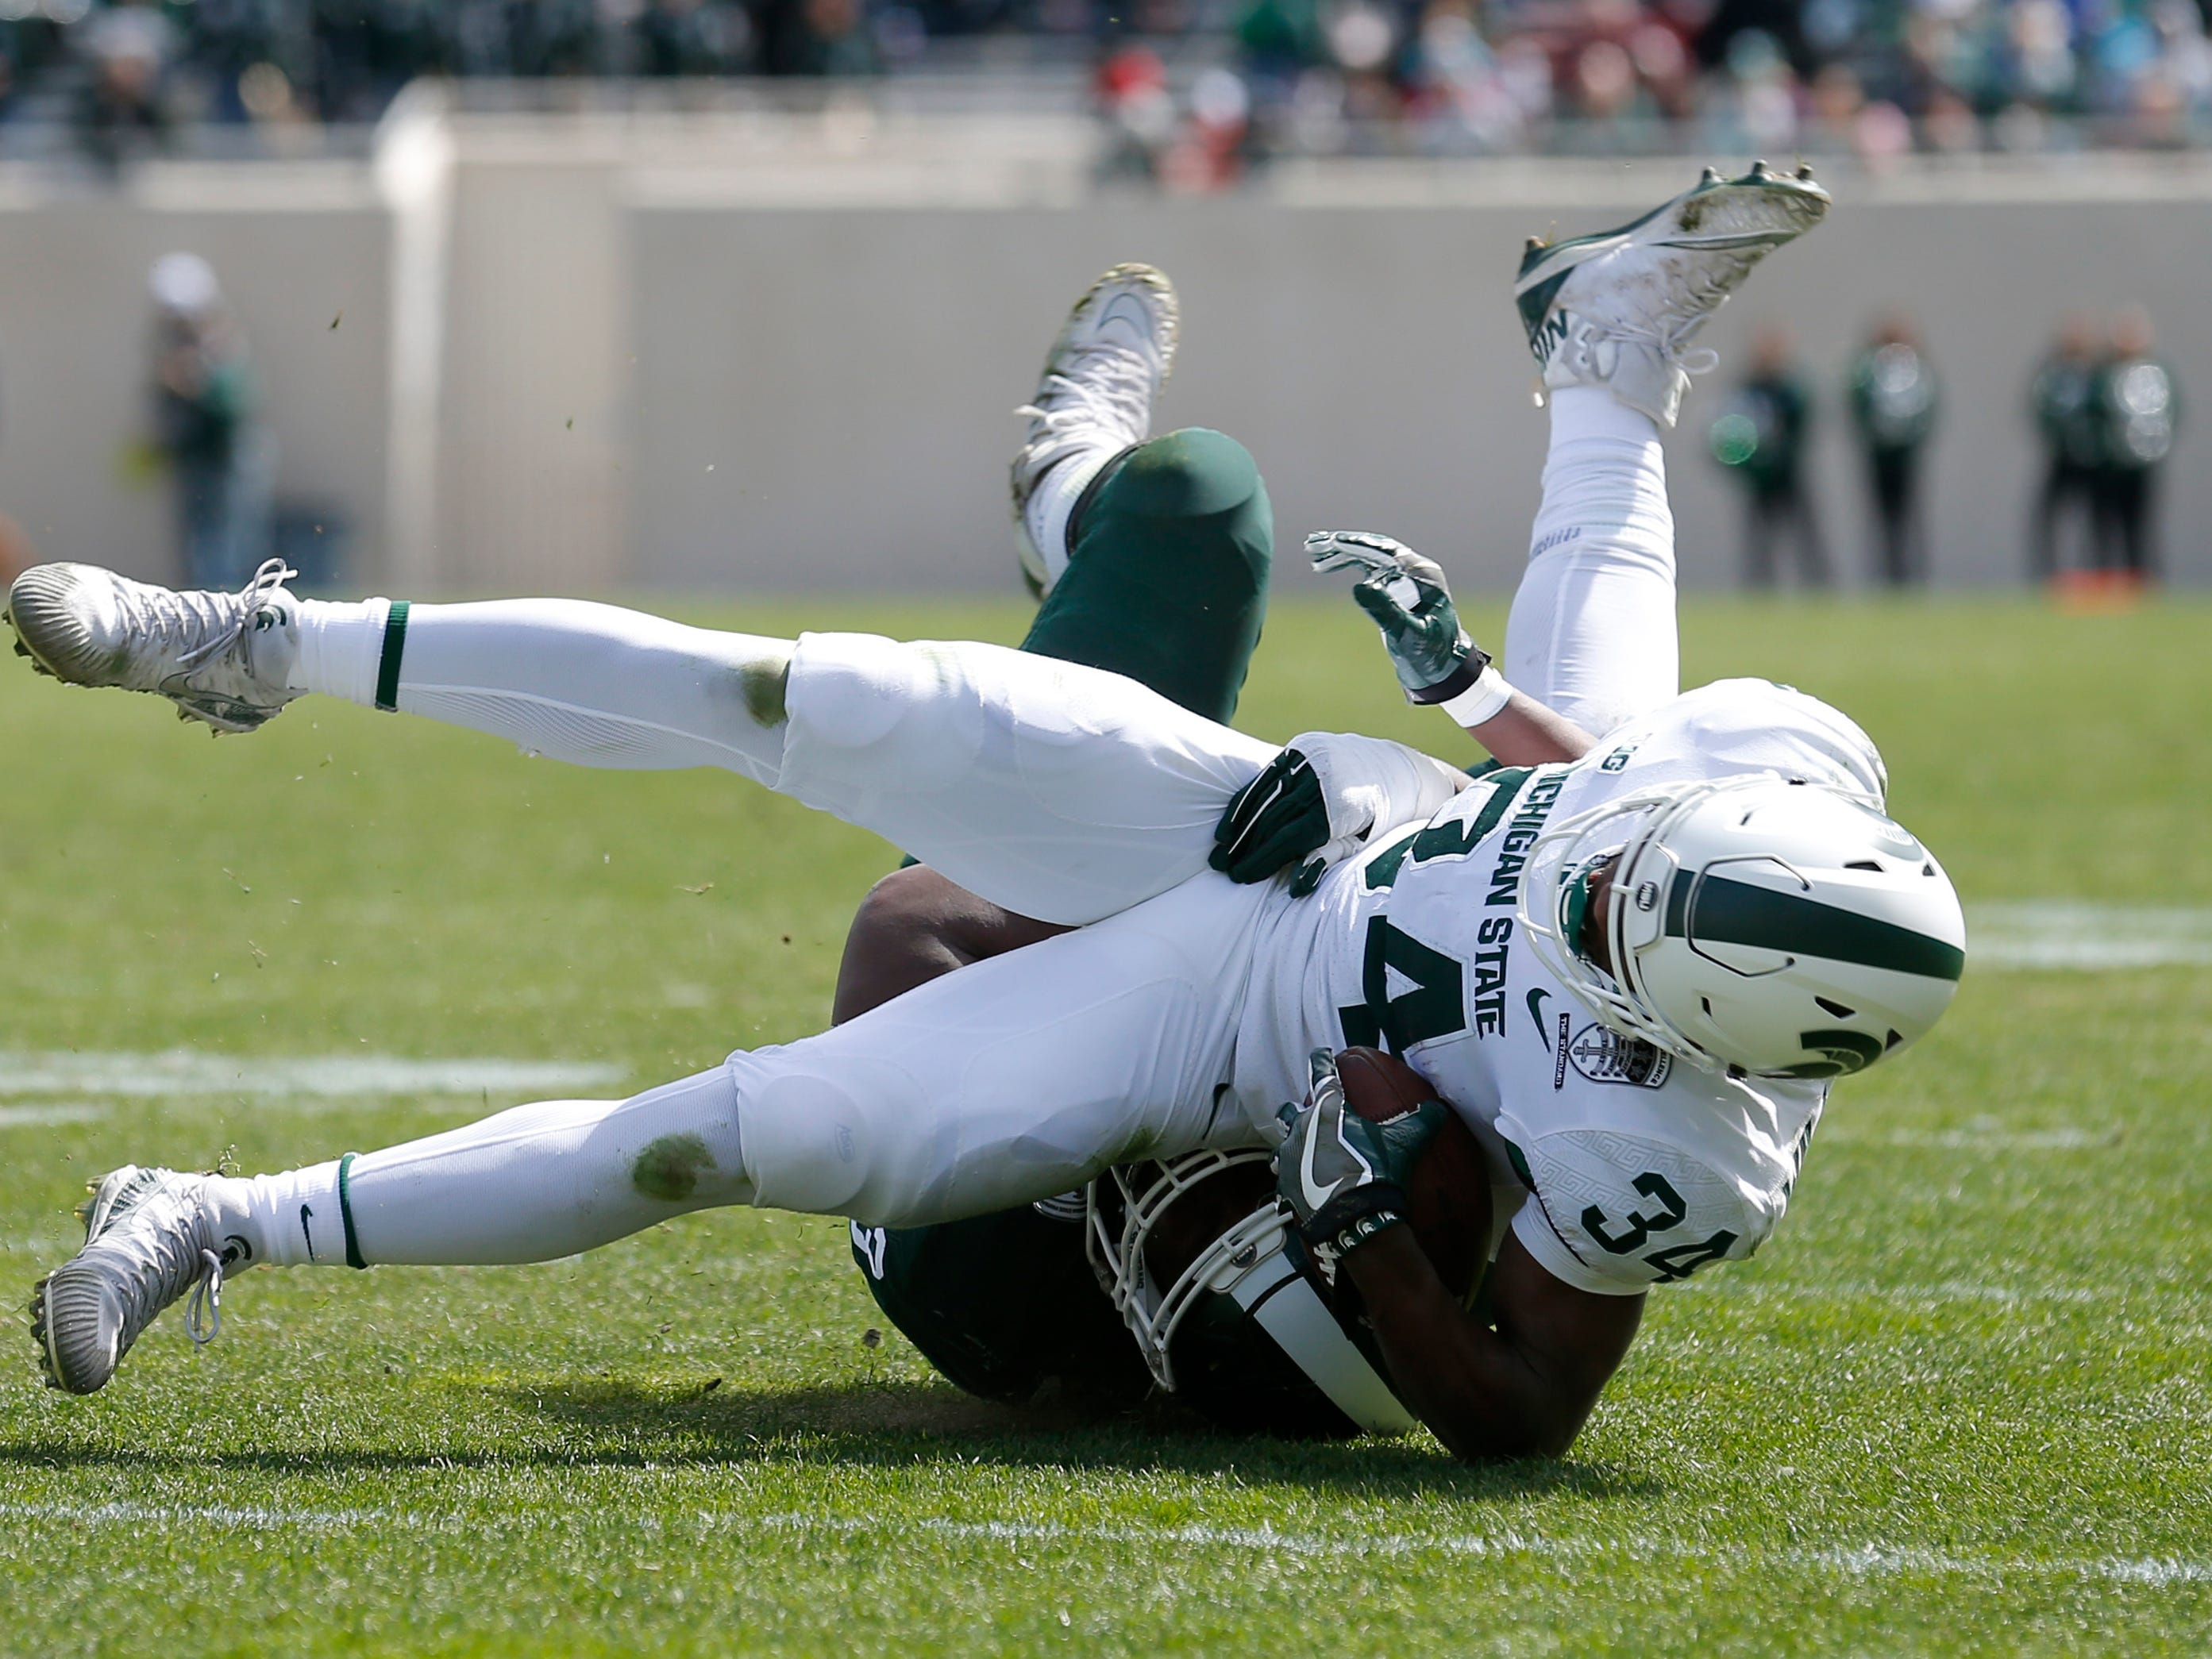 Michigan State's Anthony Williams is tackled by Naquan Jones during a spring scrimmage Saturday, April 13, 2019, in East Lansing.